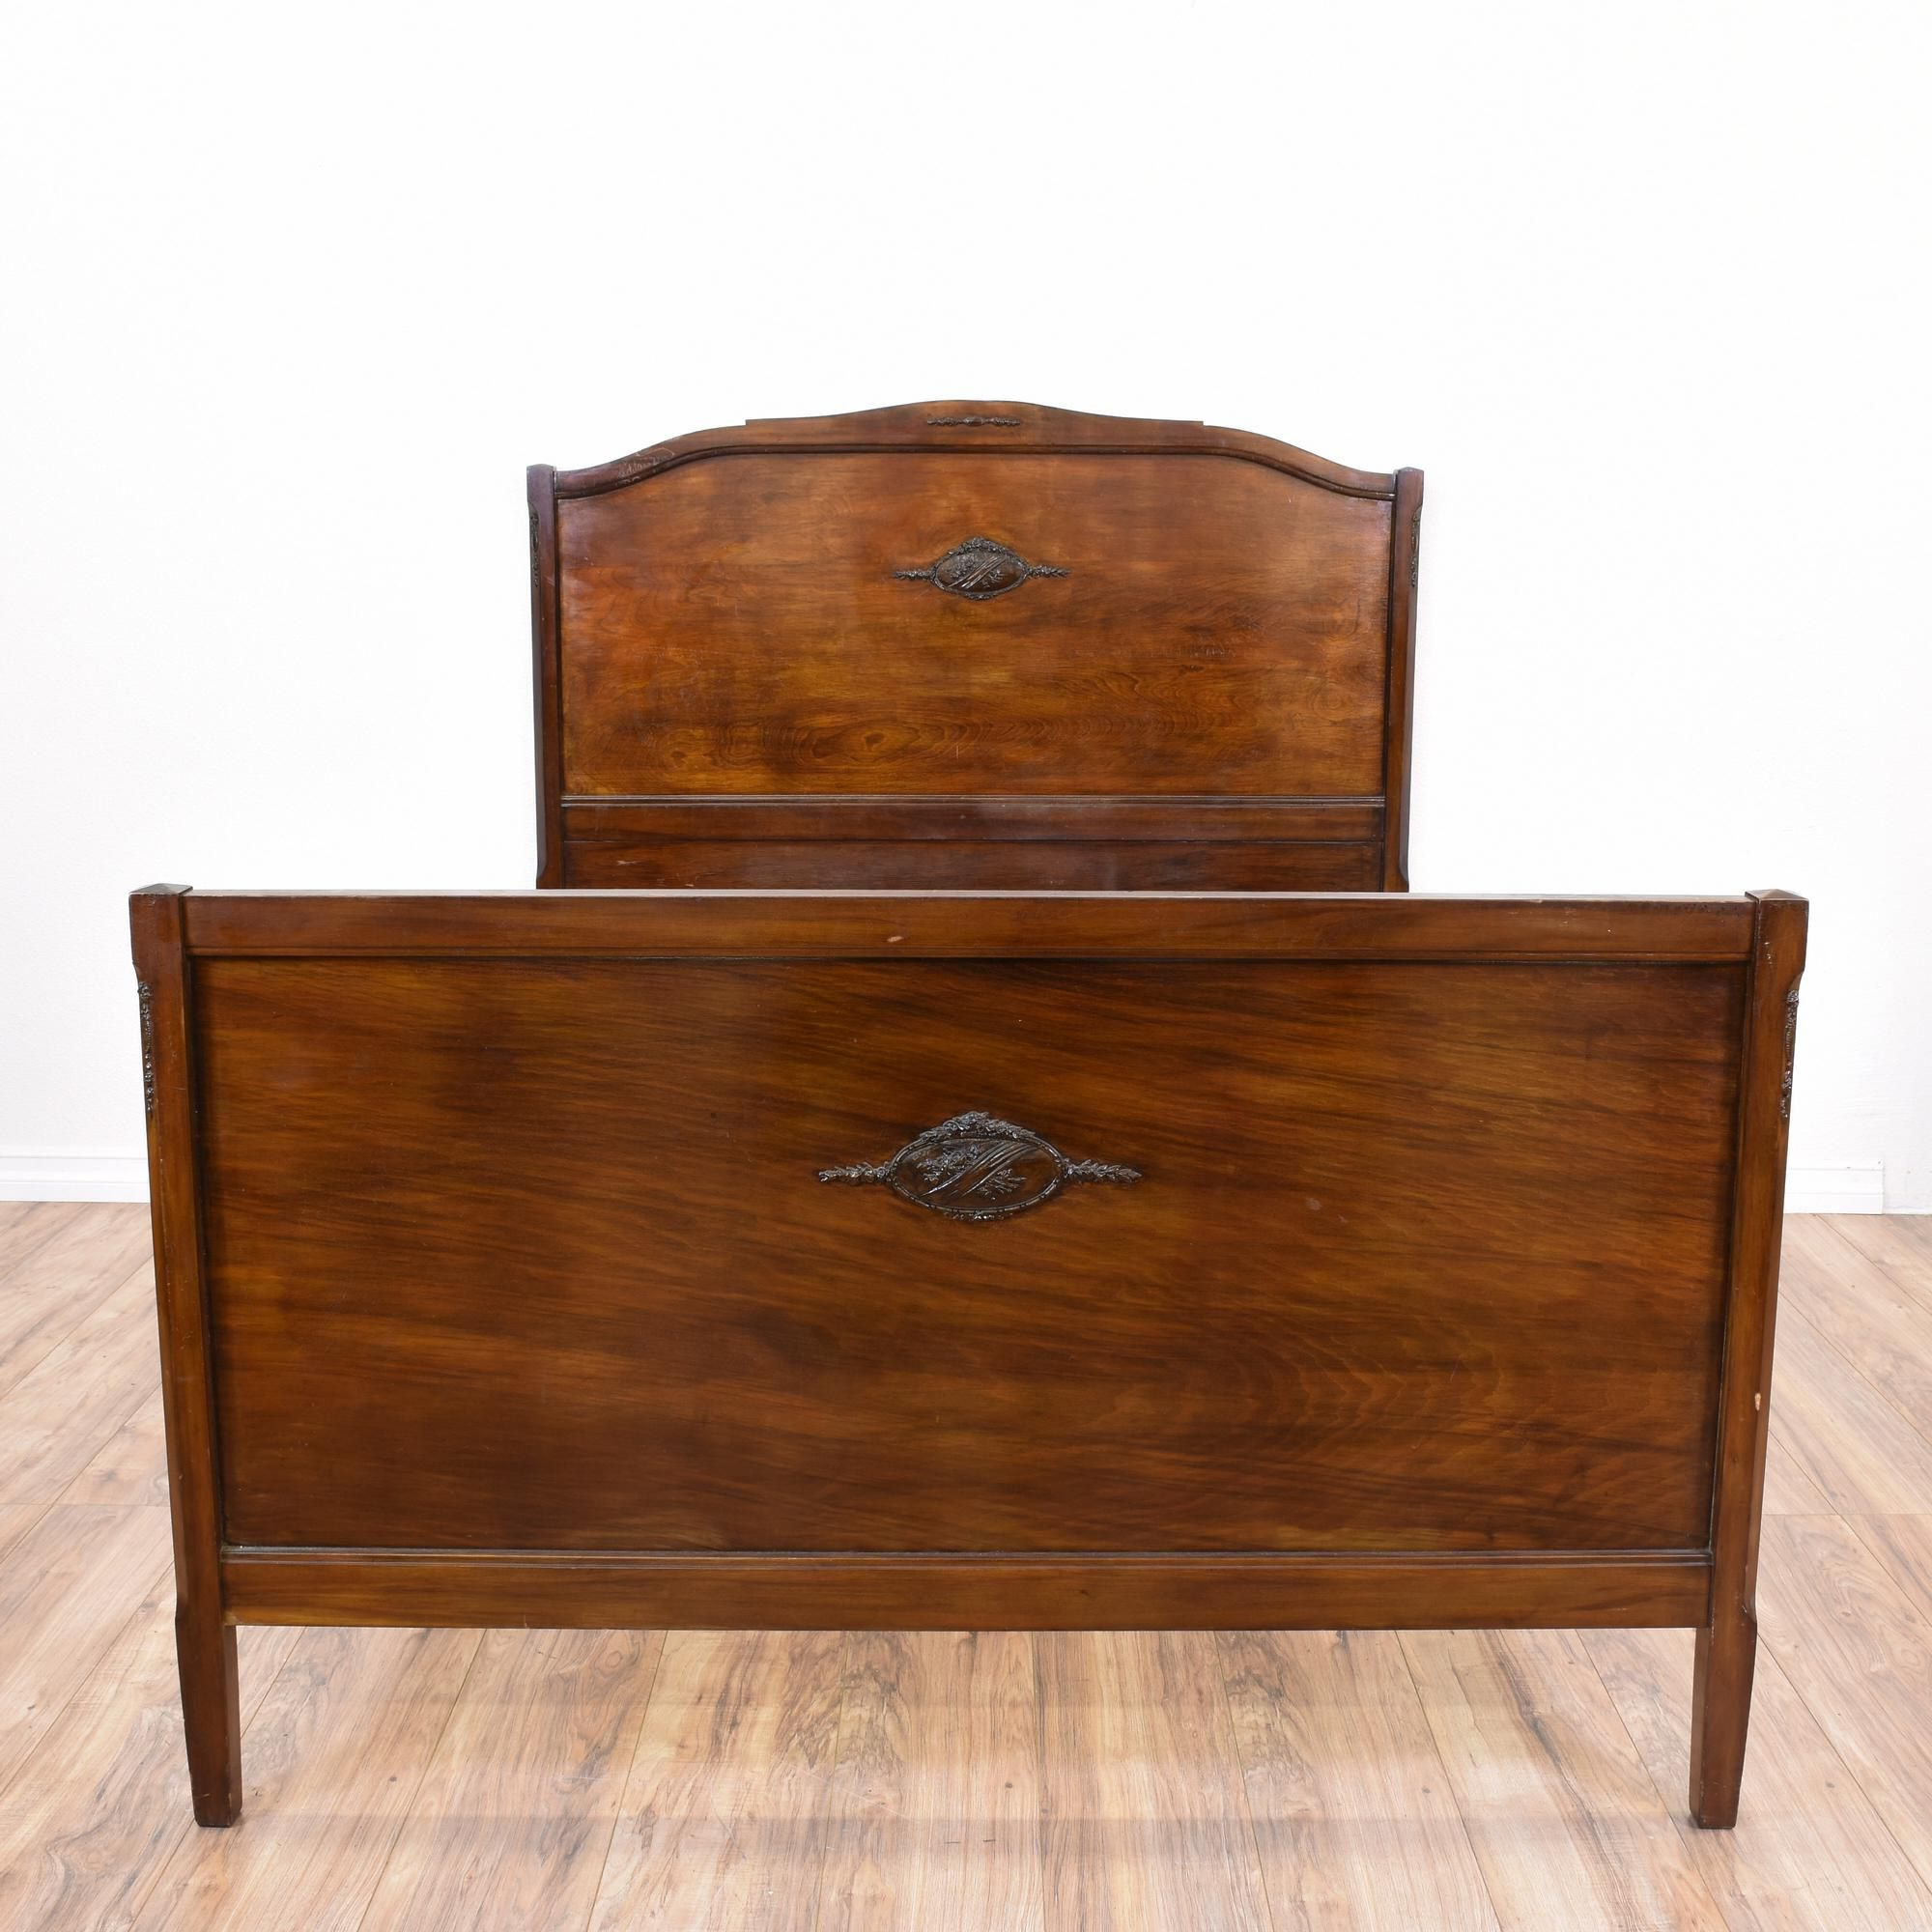 This Antique Bed Is Featured In A Solid Wood With A